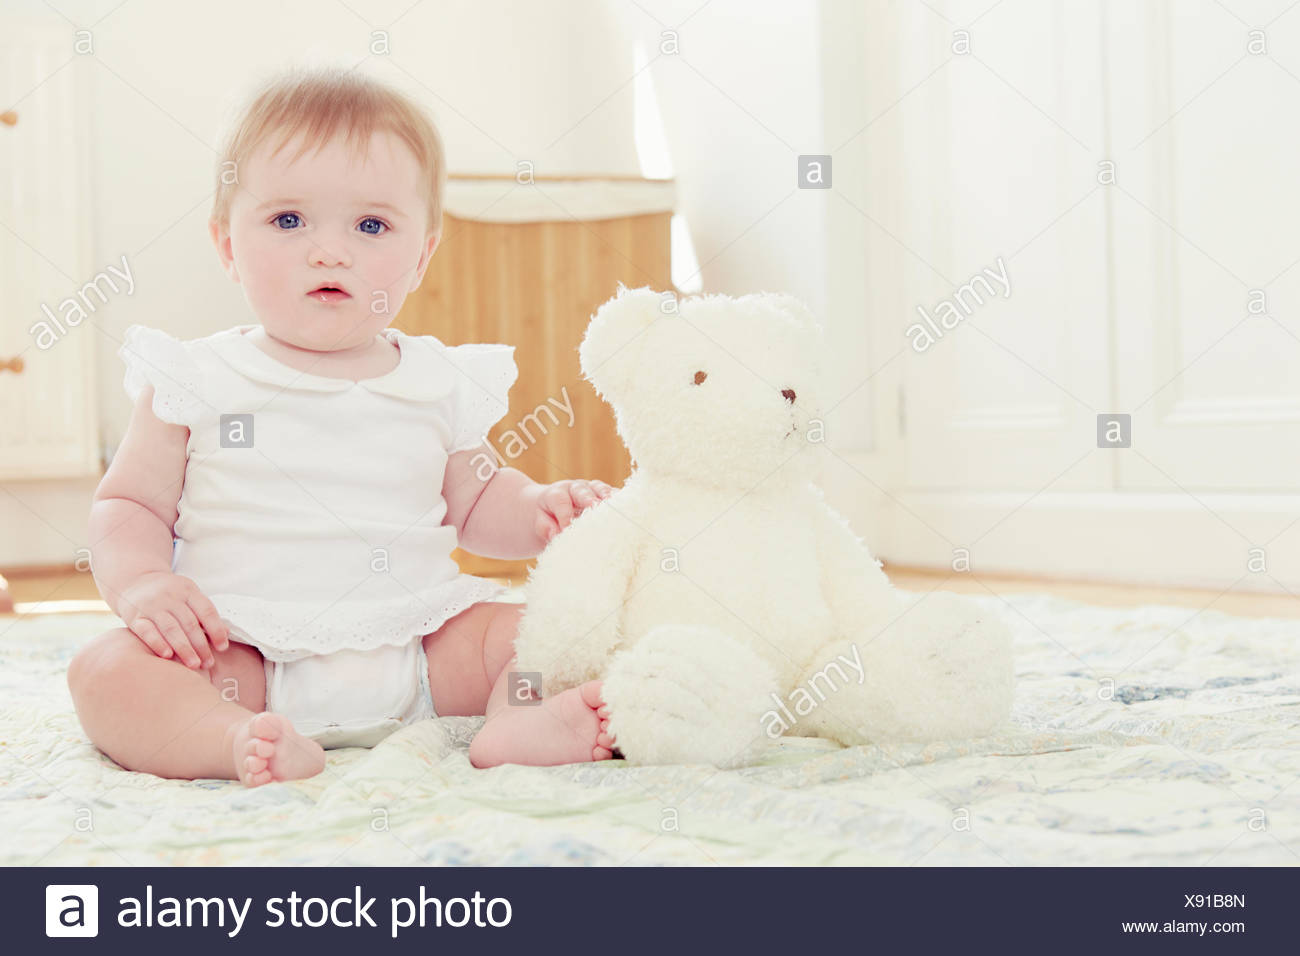 Portrait baby girl and teddy bear sitting on floor - Stock Image